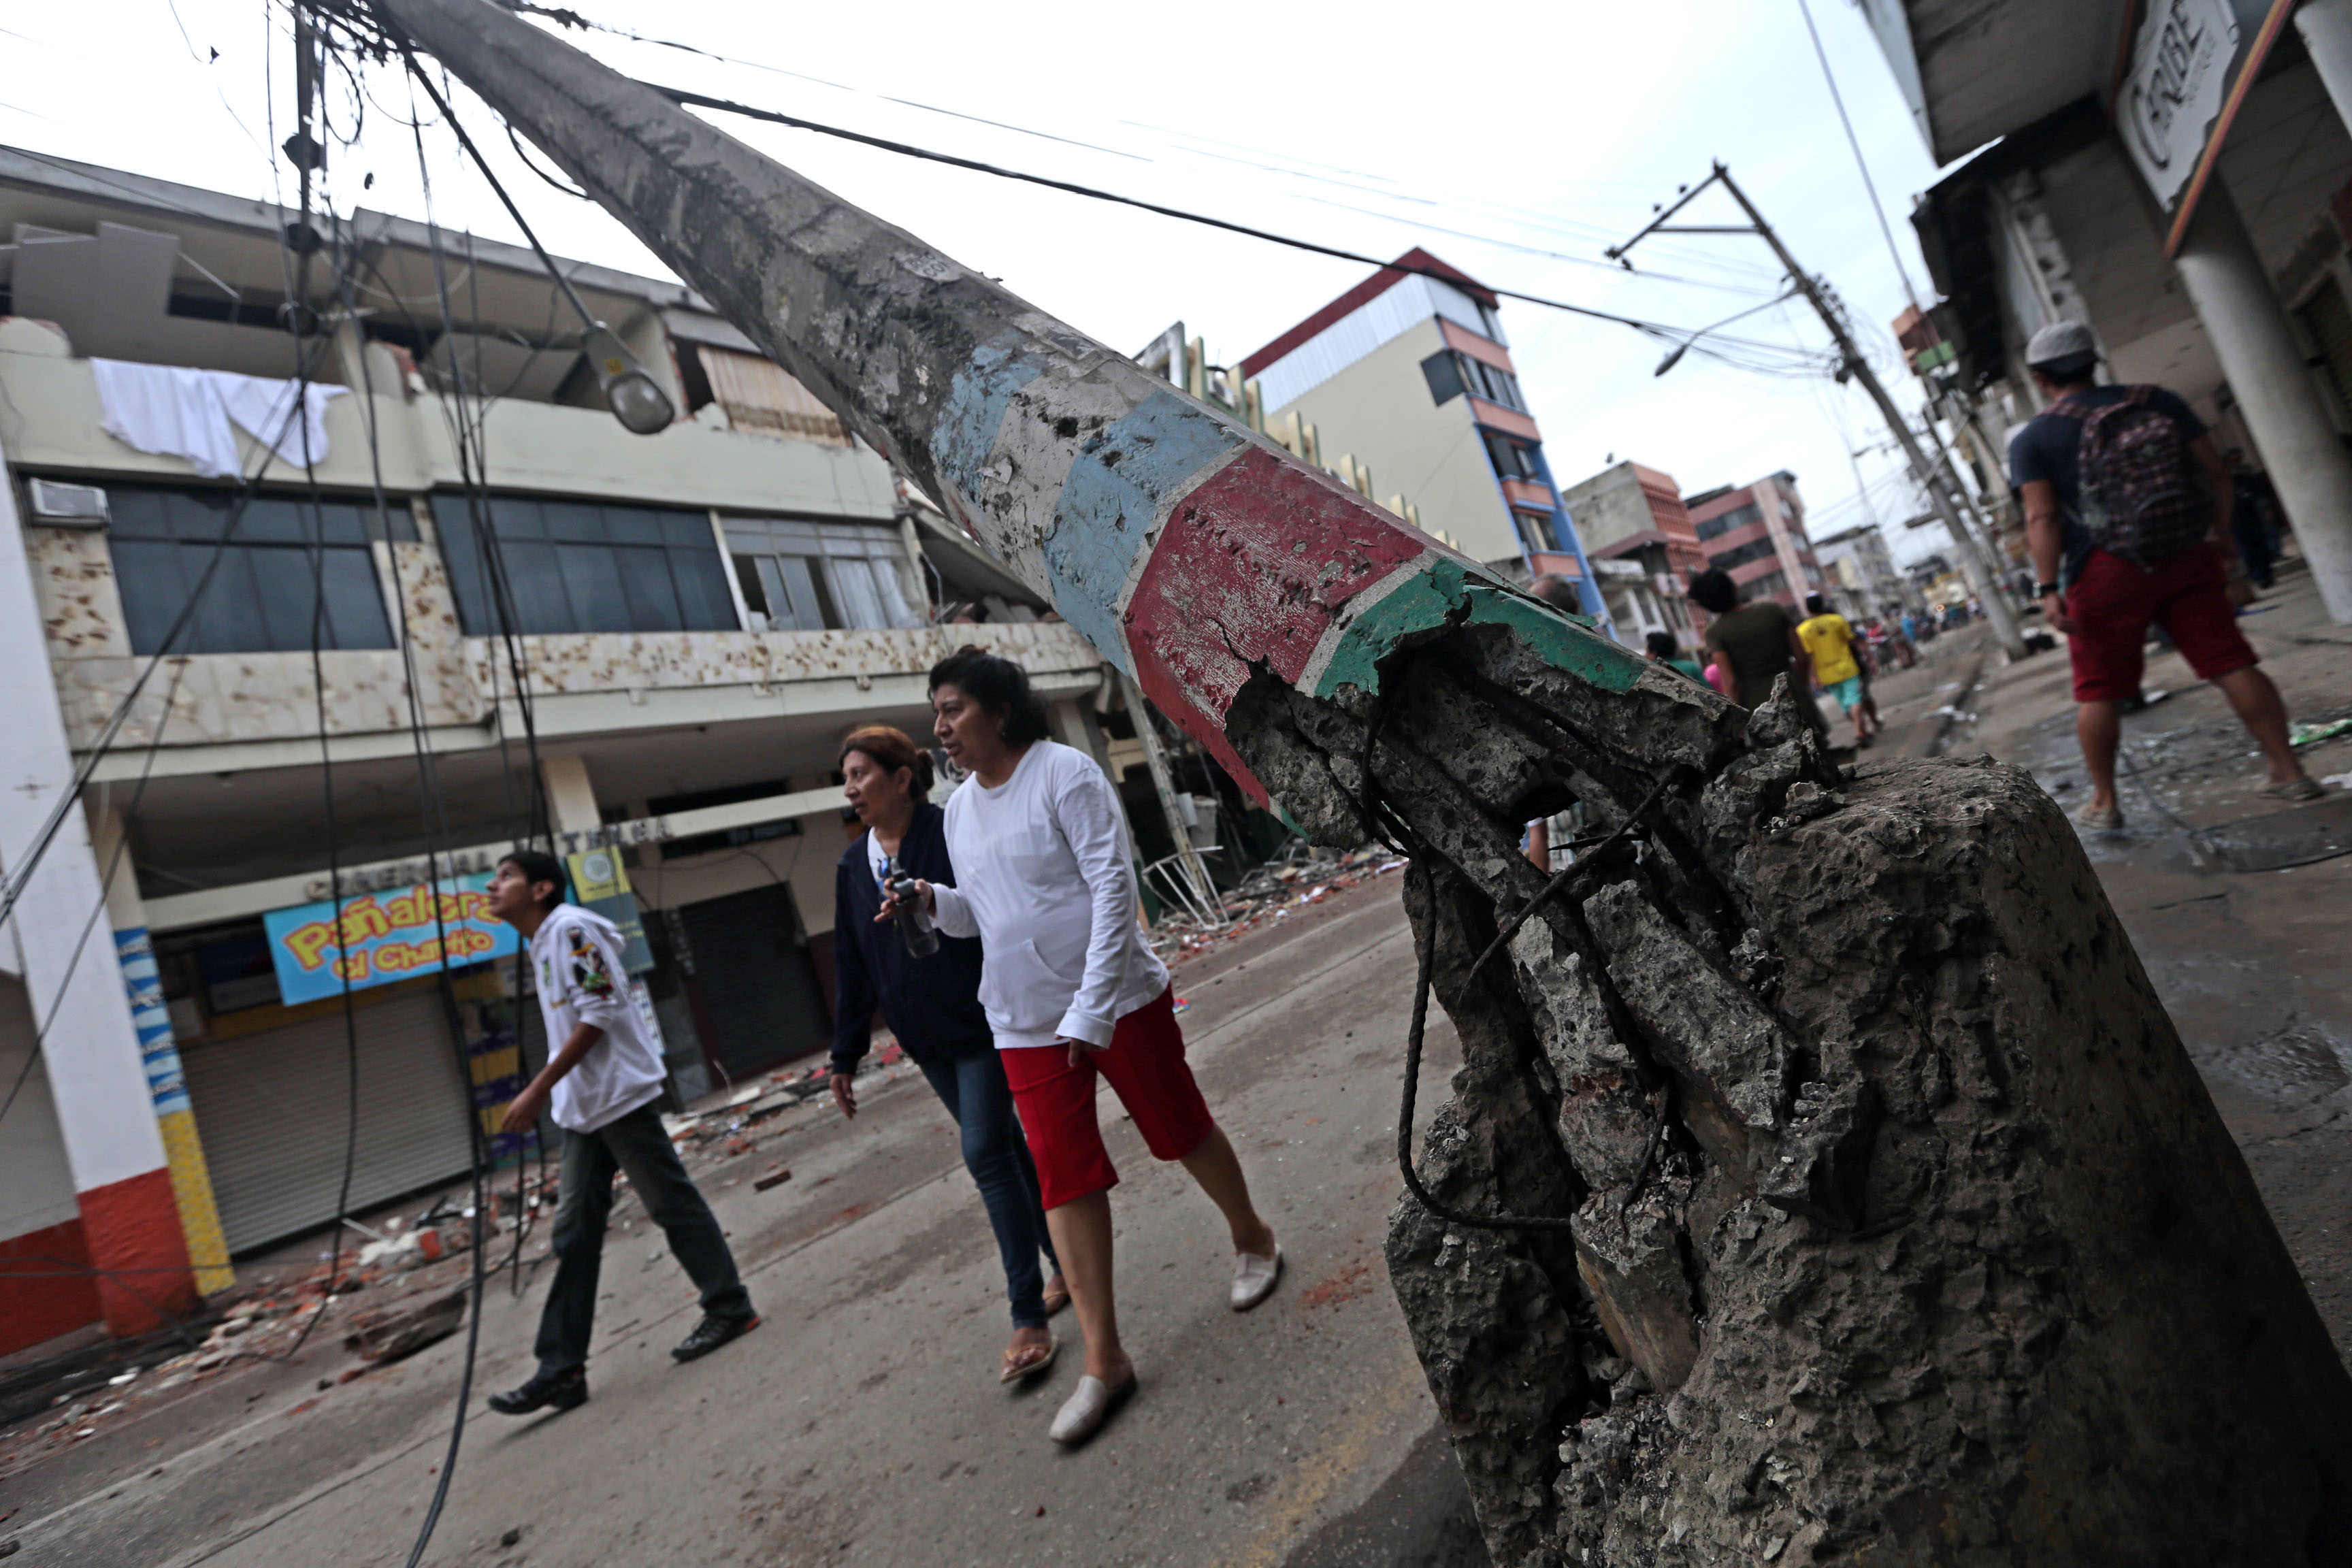 People walk along a street after a 7.8-magnitude quake in Portoviejo, Ecuador on April 17, 2016. At least 77 people were killed when a powerful earthquake struck Ecuador, destroying buildings and a bridge and sending terrified residents scrambling from their homes, authorities said Sunday. / AFP PHOTO / JUAN CEVALLOS